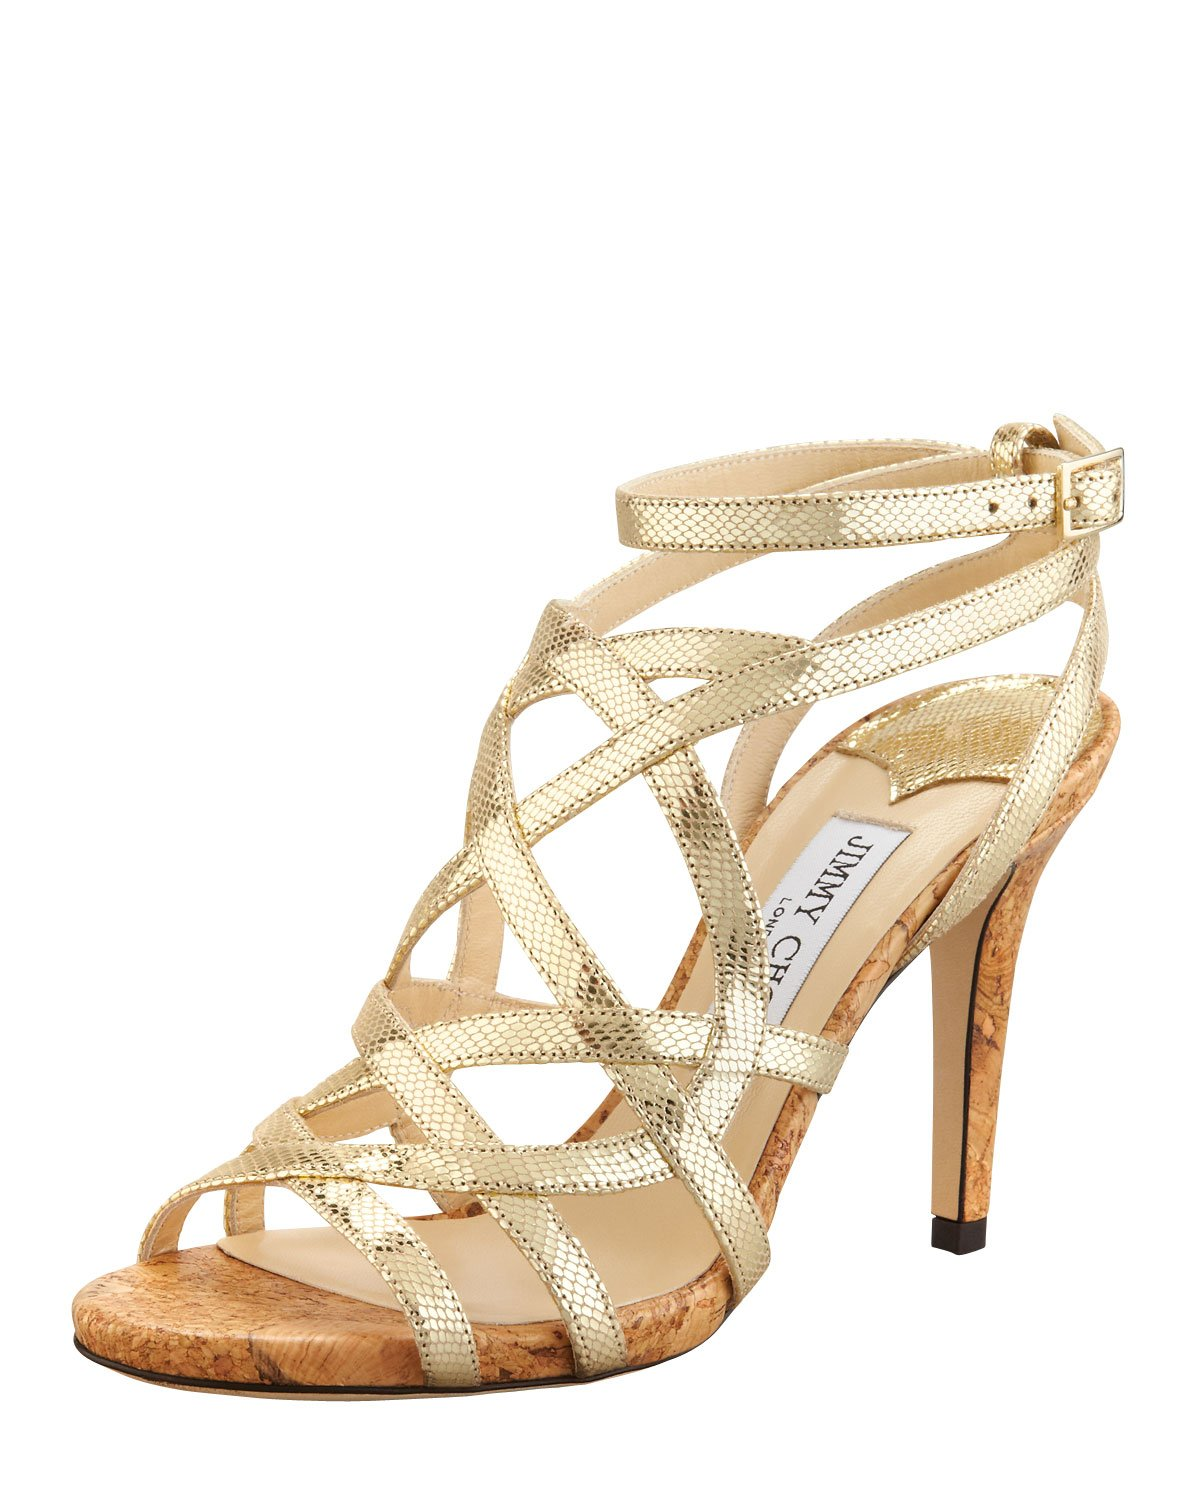 Metallic Gold Sandals Heels - Is Heel